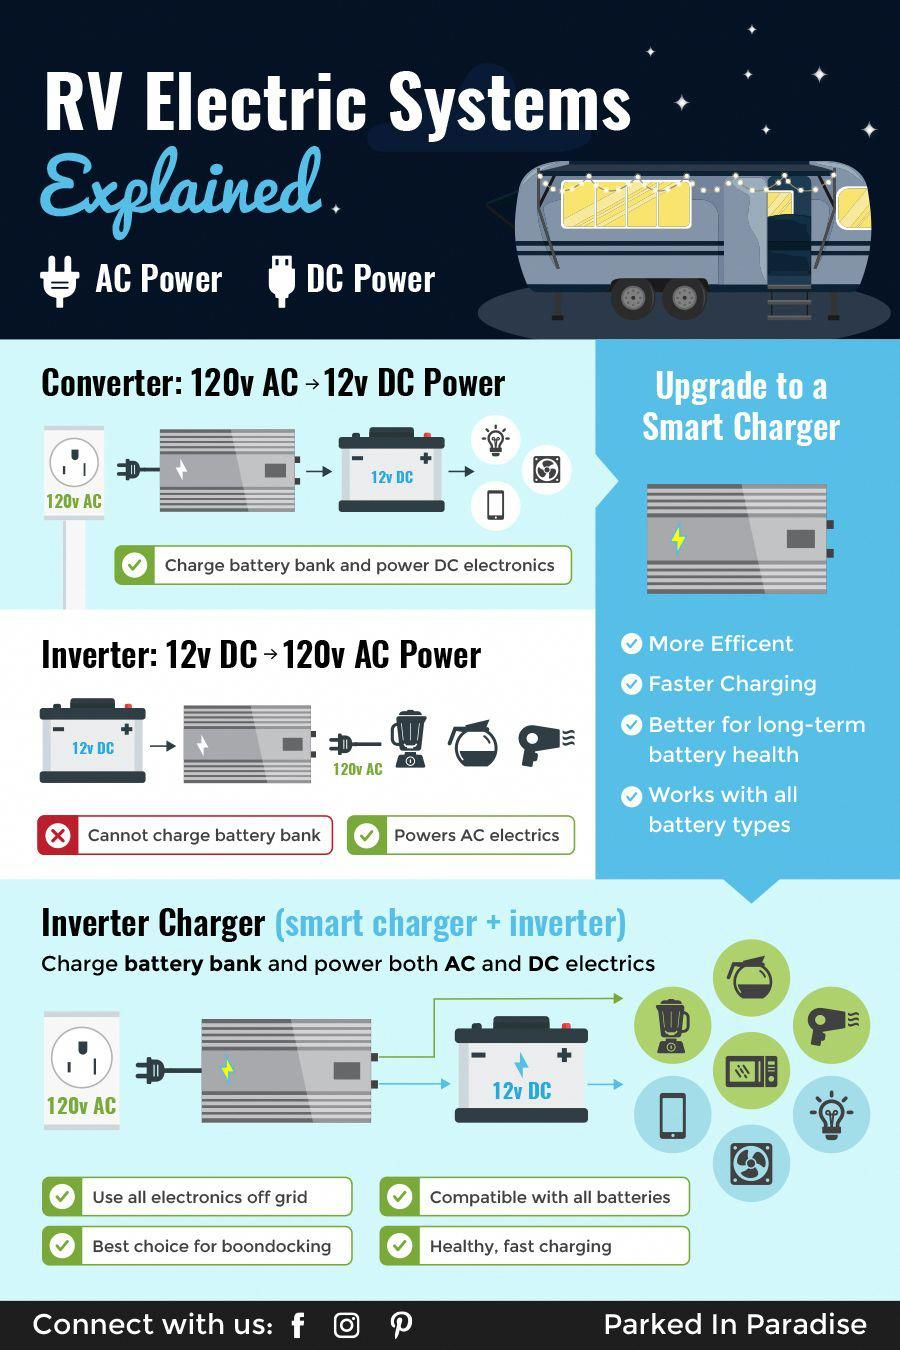 Inverters Vs Converters Vs Smart Inverter  Chargers In An